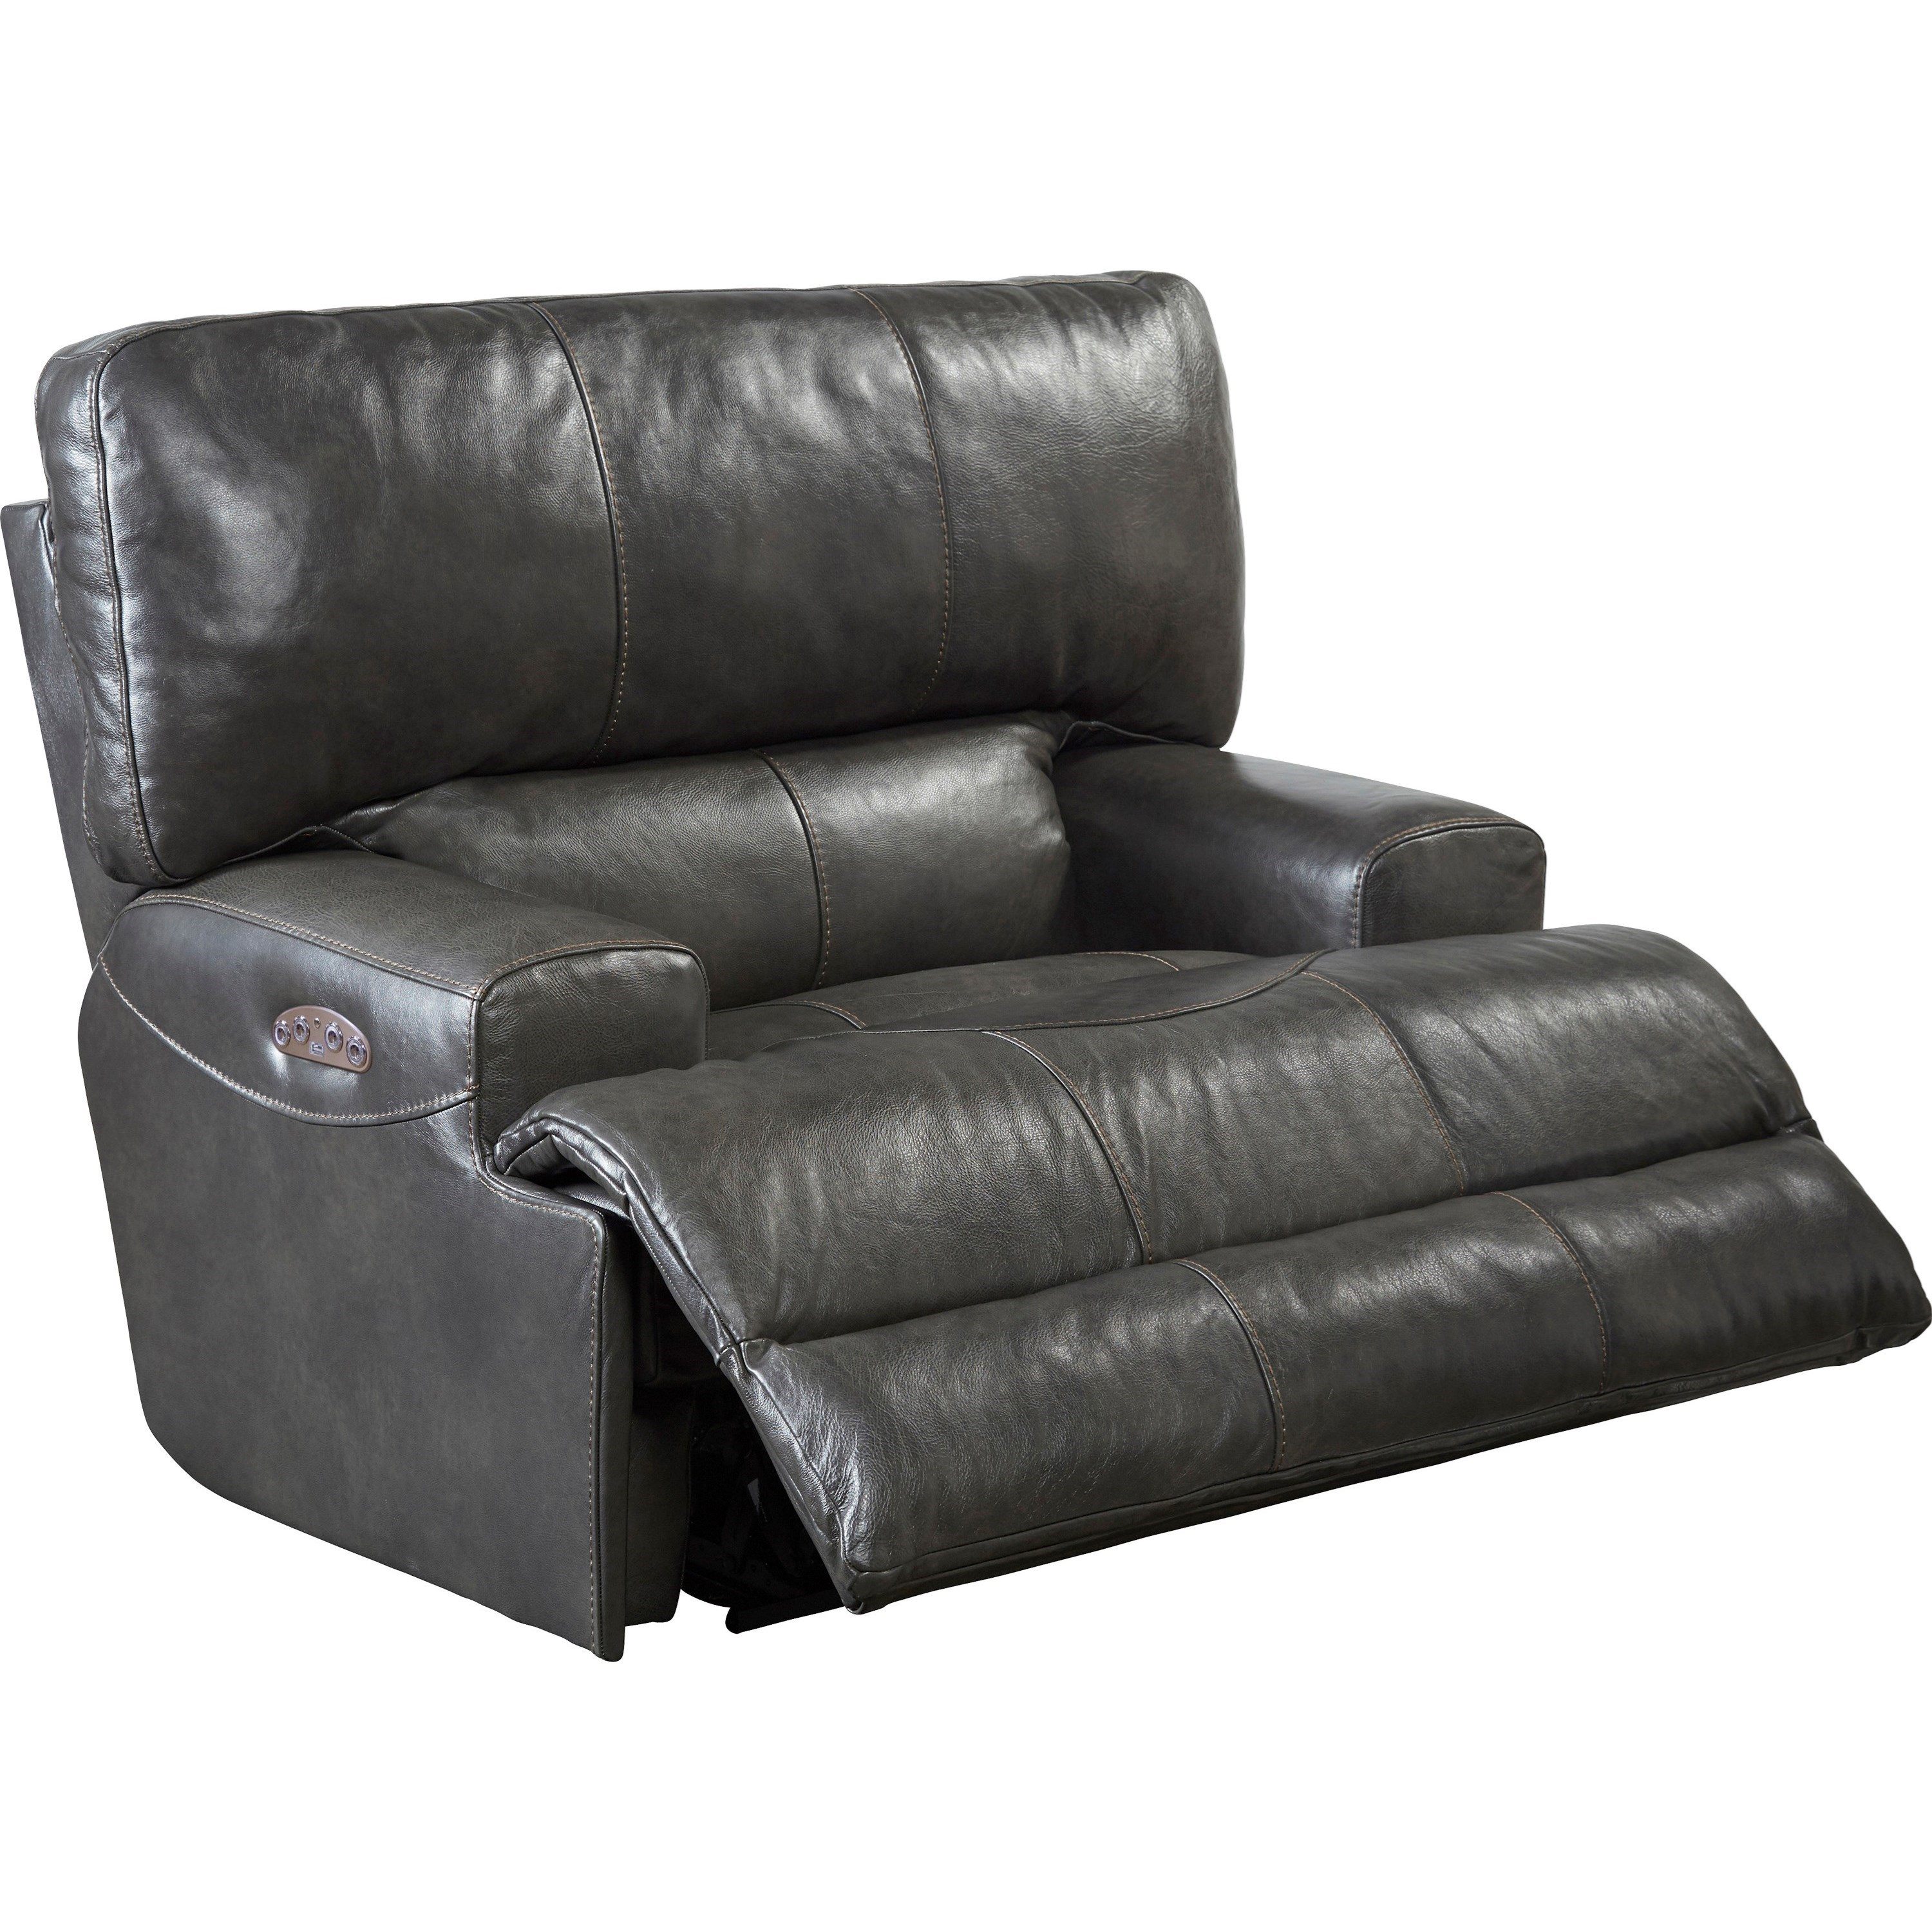 Wembley Lay Flat Recliner by Catnapper at Northeast Factory Direct